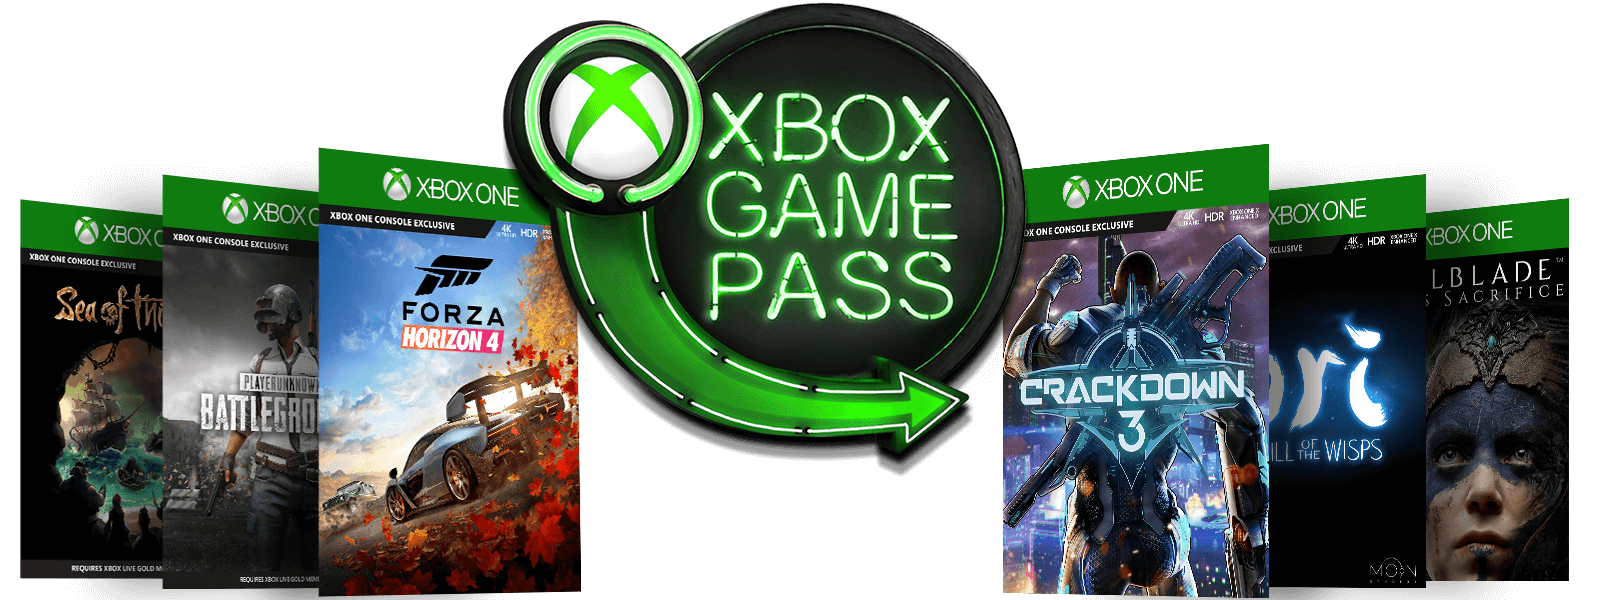 Enseigne au néon Xbox Game Pass avec le logo Xbox en forme de sphère et une flèche verte entourés de six jeux : Sea of Thieves, PLAYERUNKNOWN'S BATTLEGROUND, Forza Horizon 4, Crackdown 3, Ori and the Will of the Wisps et Hellblade : Senua's Sacrifice